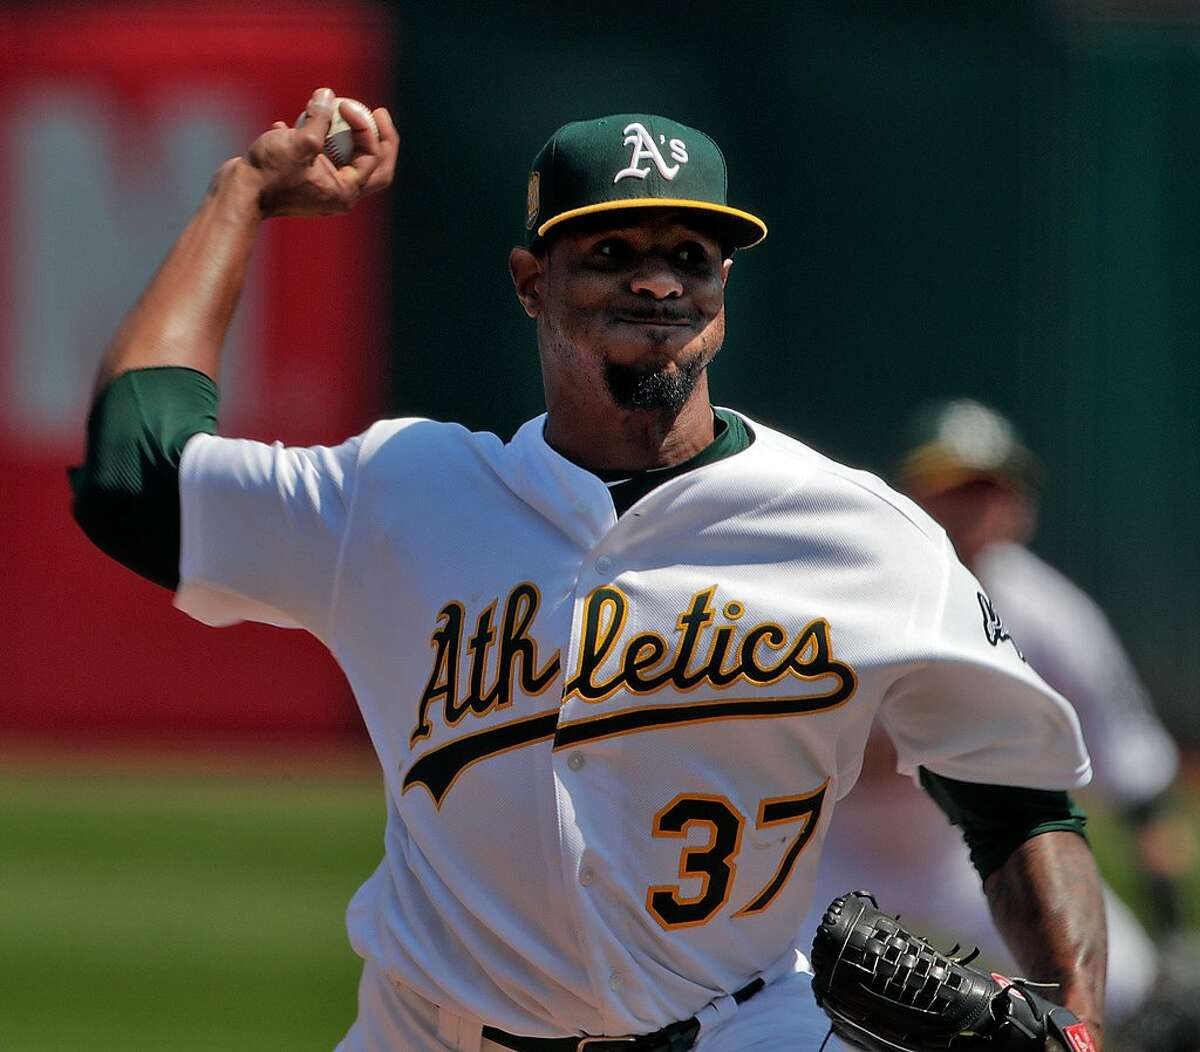 Fluky pitching Here's one way to look at it: the A's pitching was pretty good last year. Their 3.82 team ERA ranked 11th-best in all of baseball, led by a stalwart bullpen and a rotation that hung in there despite suffering injury after injury. Here's another way to look at it: the A's pitching was really lucky. The pitching metric FIP strips out events that are subject to luck and isolates the events over which pitchers have the most control: home runs, strikeouts, and walks. The A's 4.18 FIP ranked 20th-best, a far-cry from their above-average ERA. Edwin Jackson, who somehow threw 92 innings for the A's in 2018, managed a 3.33 ERA despite his 4.65 FIP. Performances like Jackson's are statistically unlikely to repeat themselves in 2019.